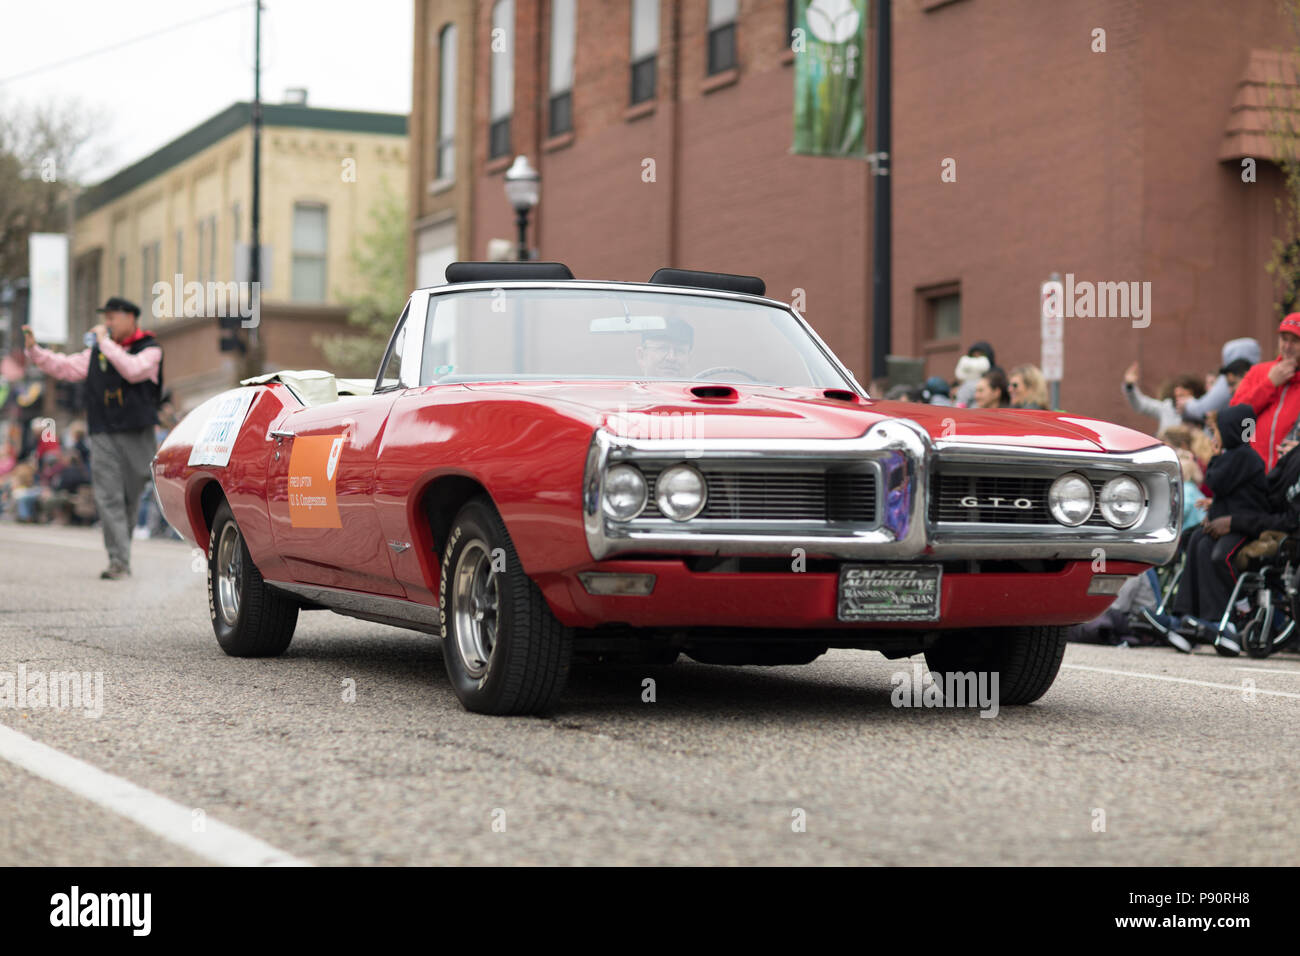 Pontiac Gto Stock Photos Images Alamy 1960 Judge Holland Michigan Usa May 12 2018 A Red Classic Muscle